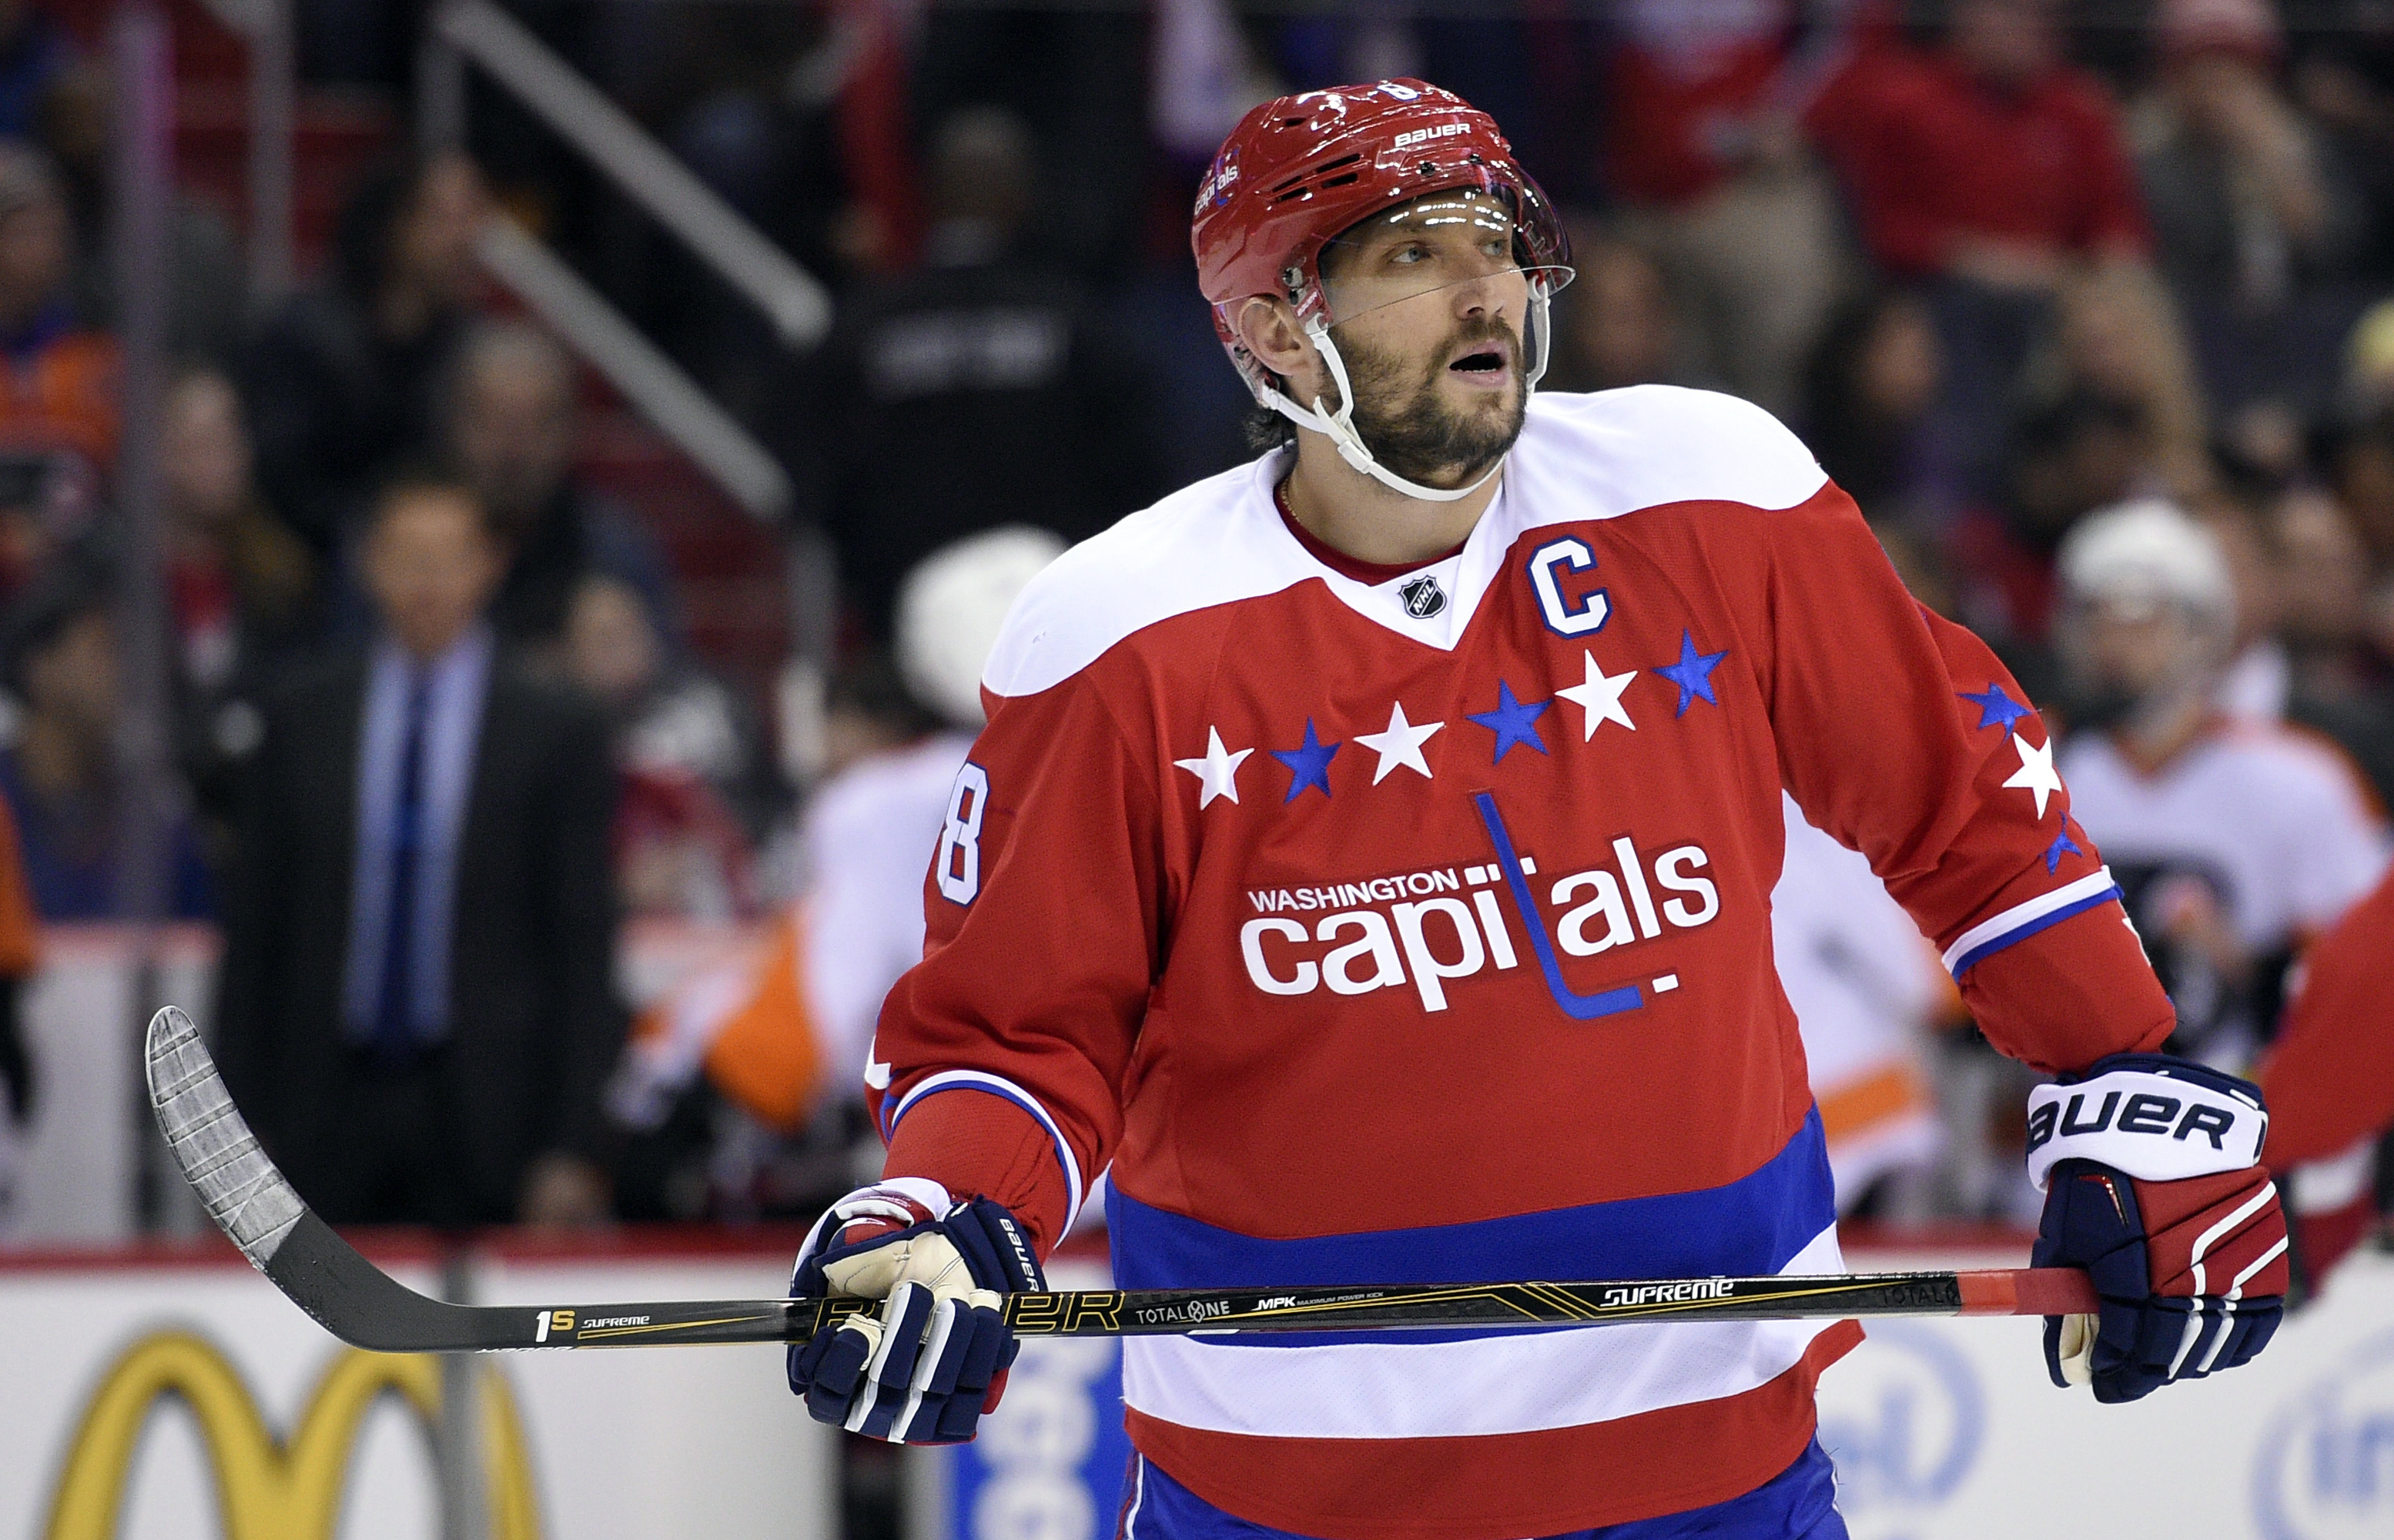 FILE - In this Jan. 27, 2016, file photo, Washington Capitals left wing Alex Ovechkin (8), of Russia, looks on during the first period of an NHL hockey game against the Philadelphia Flyers in Washington. Ovechkin and the  Capitals lead the NHL with 73 poi